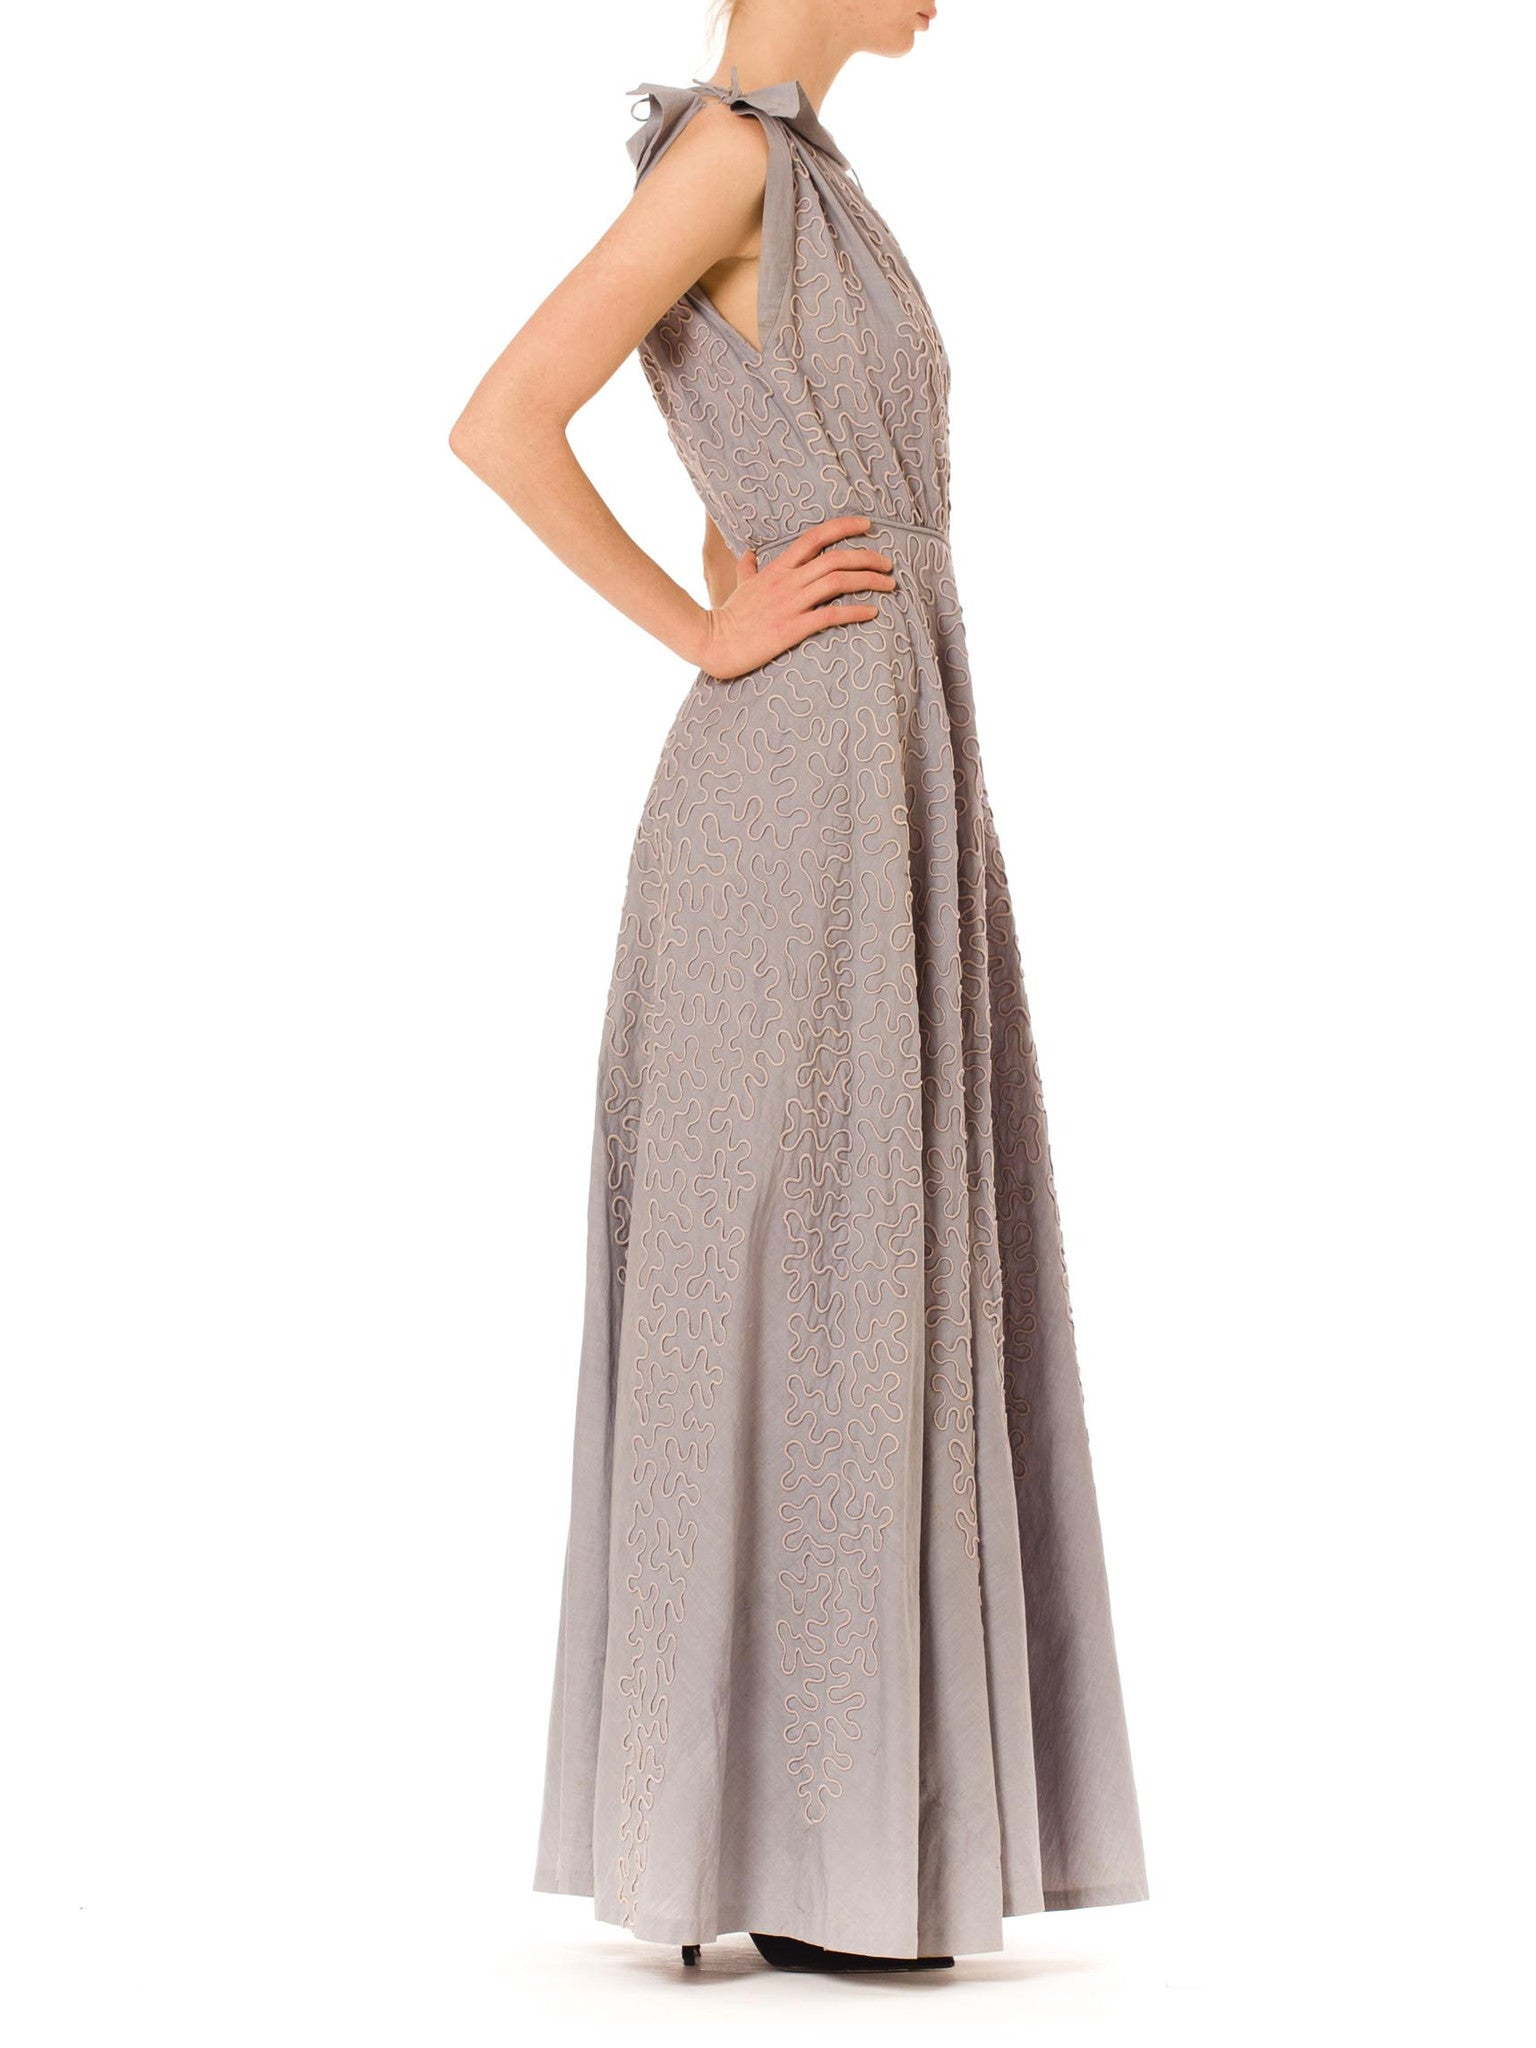 1940S OMAR KIAM Dove Grey Cotton Elaborately Embroidered Summer Gown With Shoulder & Waist Ties